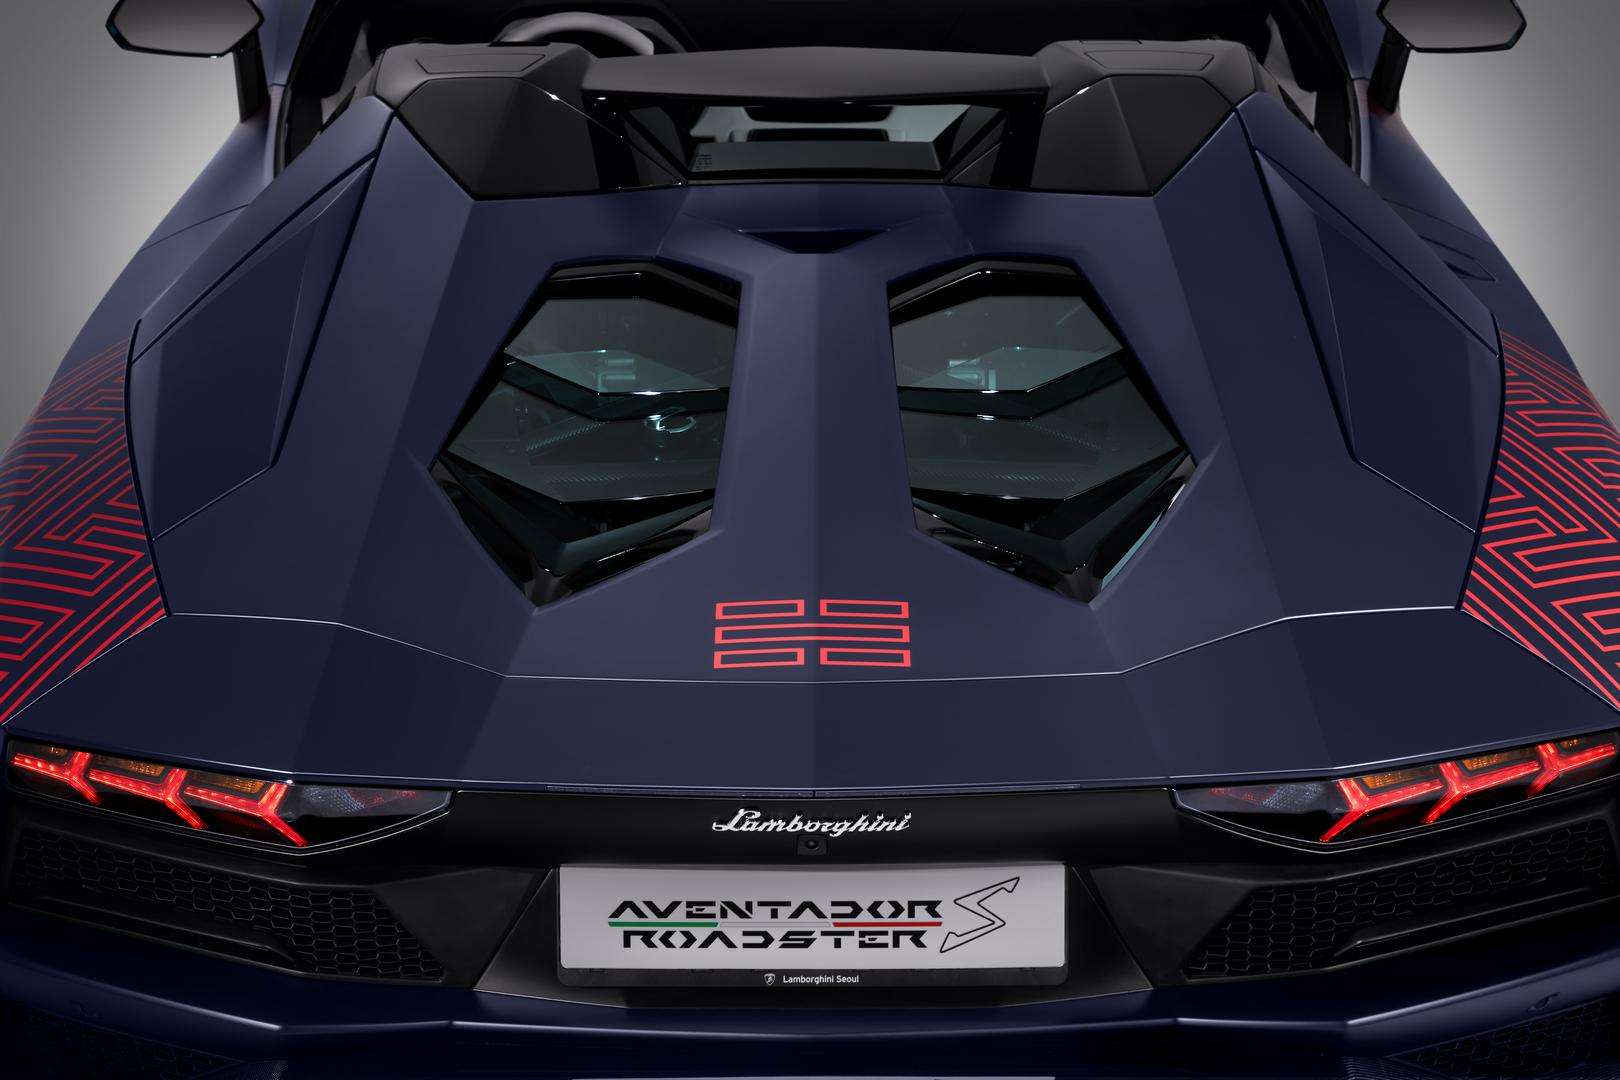 Aventador S Roadster taillights